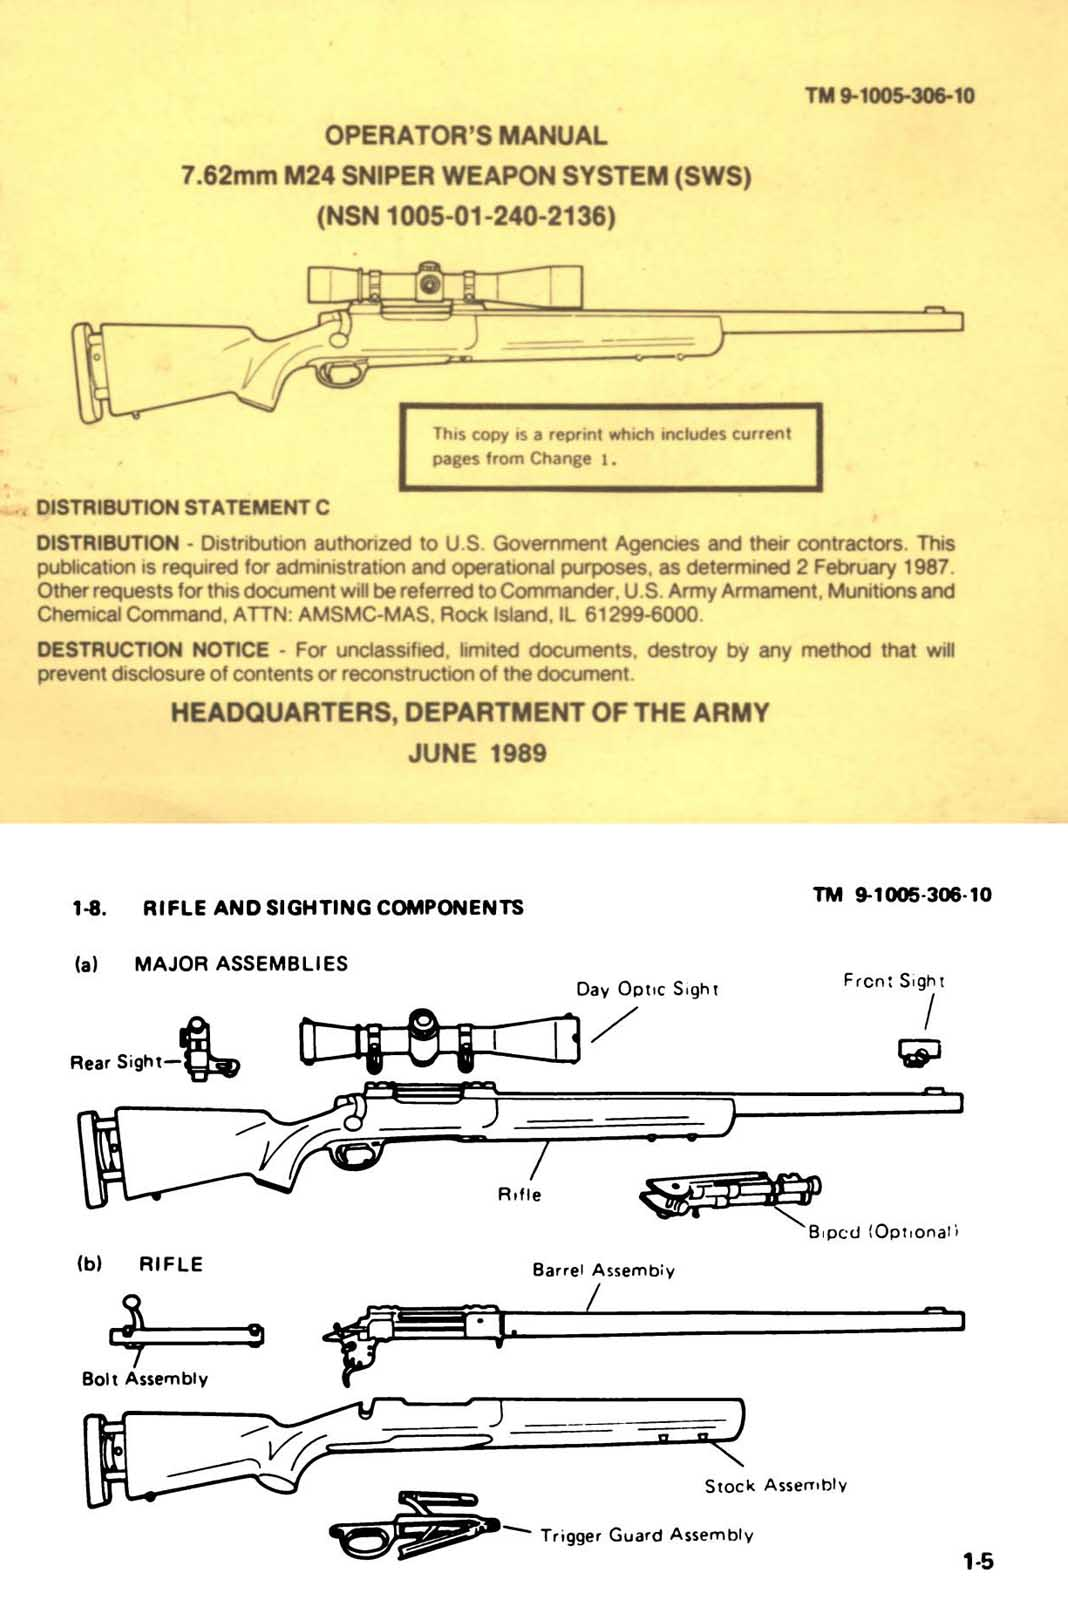 M-24 Operators Manual 1989 Sniper Weapons System (SWS) 7.62mm